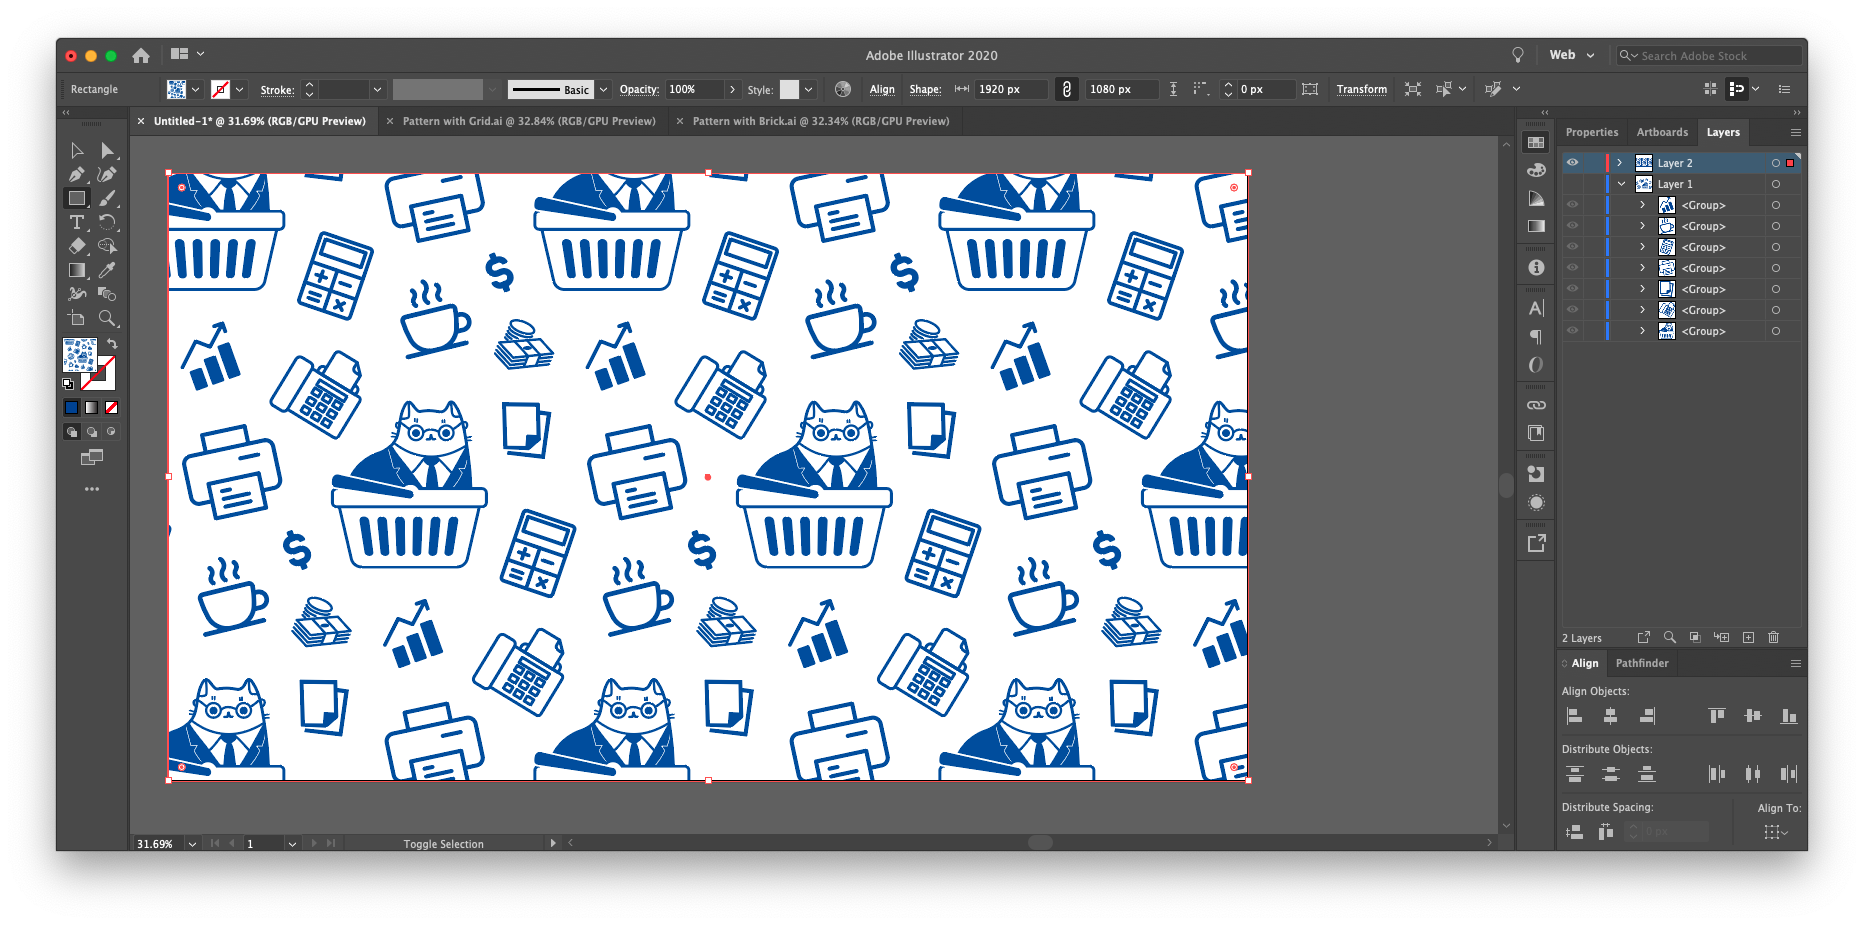 How to make your new pattern visible in Illustrator: once you've finished editing your pattern, it can be saved as a Swatch, which can then be used as a fill (the same way you would fill a rectangle with a solid color). Create a shape such as a rectangle that spans the artboard and fill it with your repeating pattern.